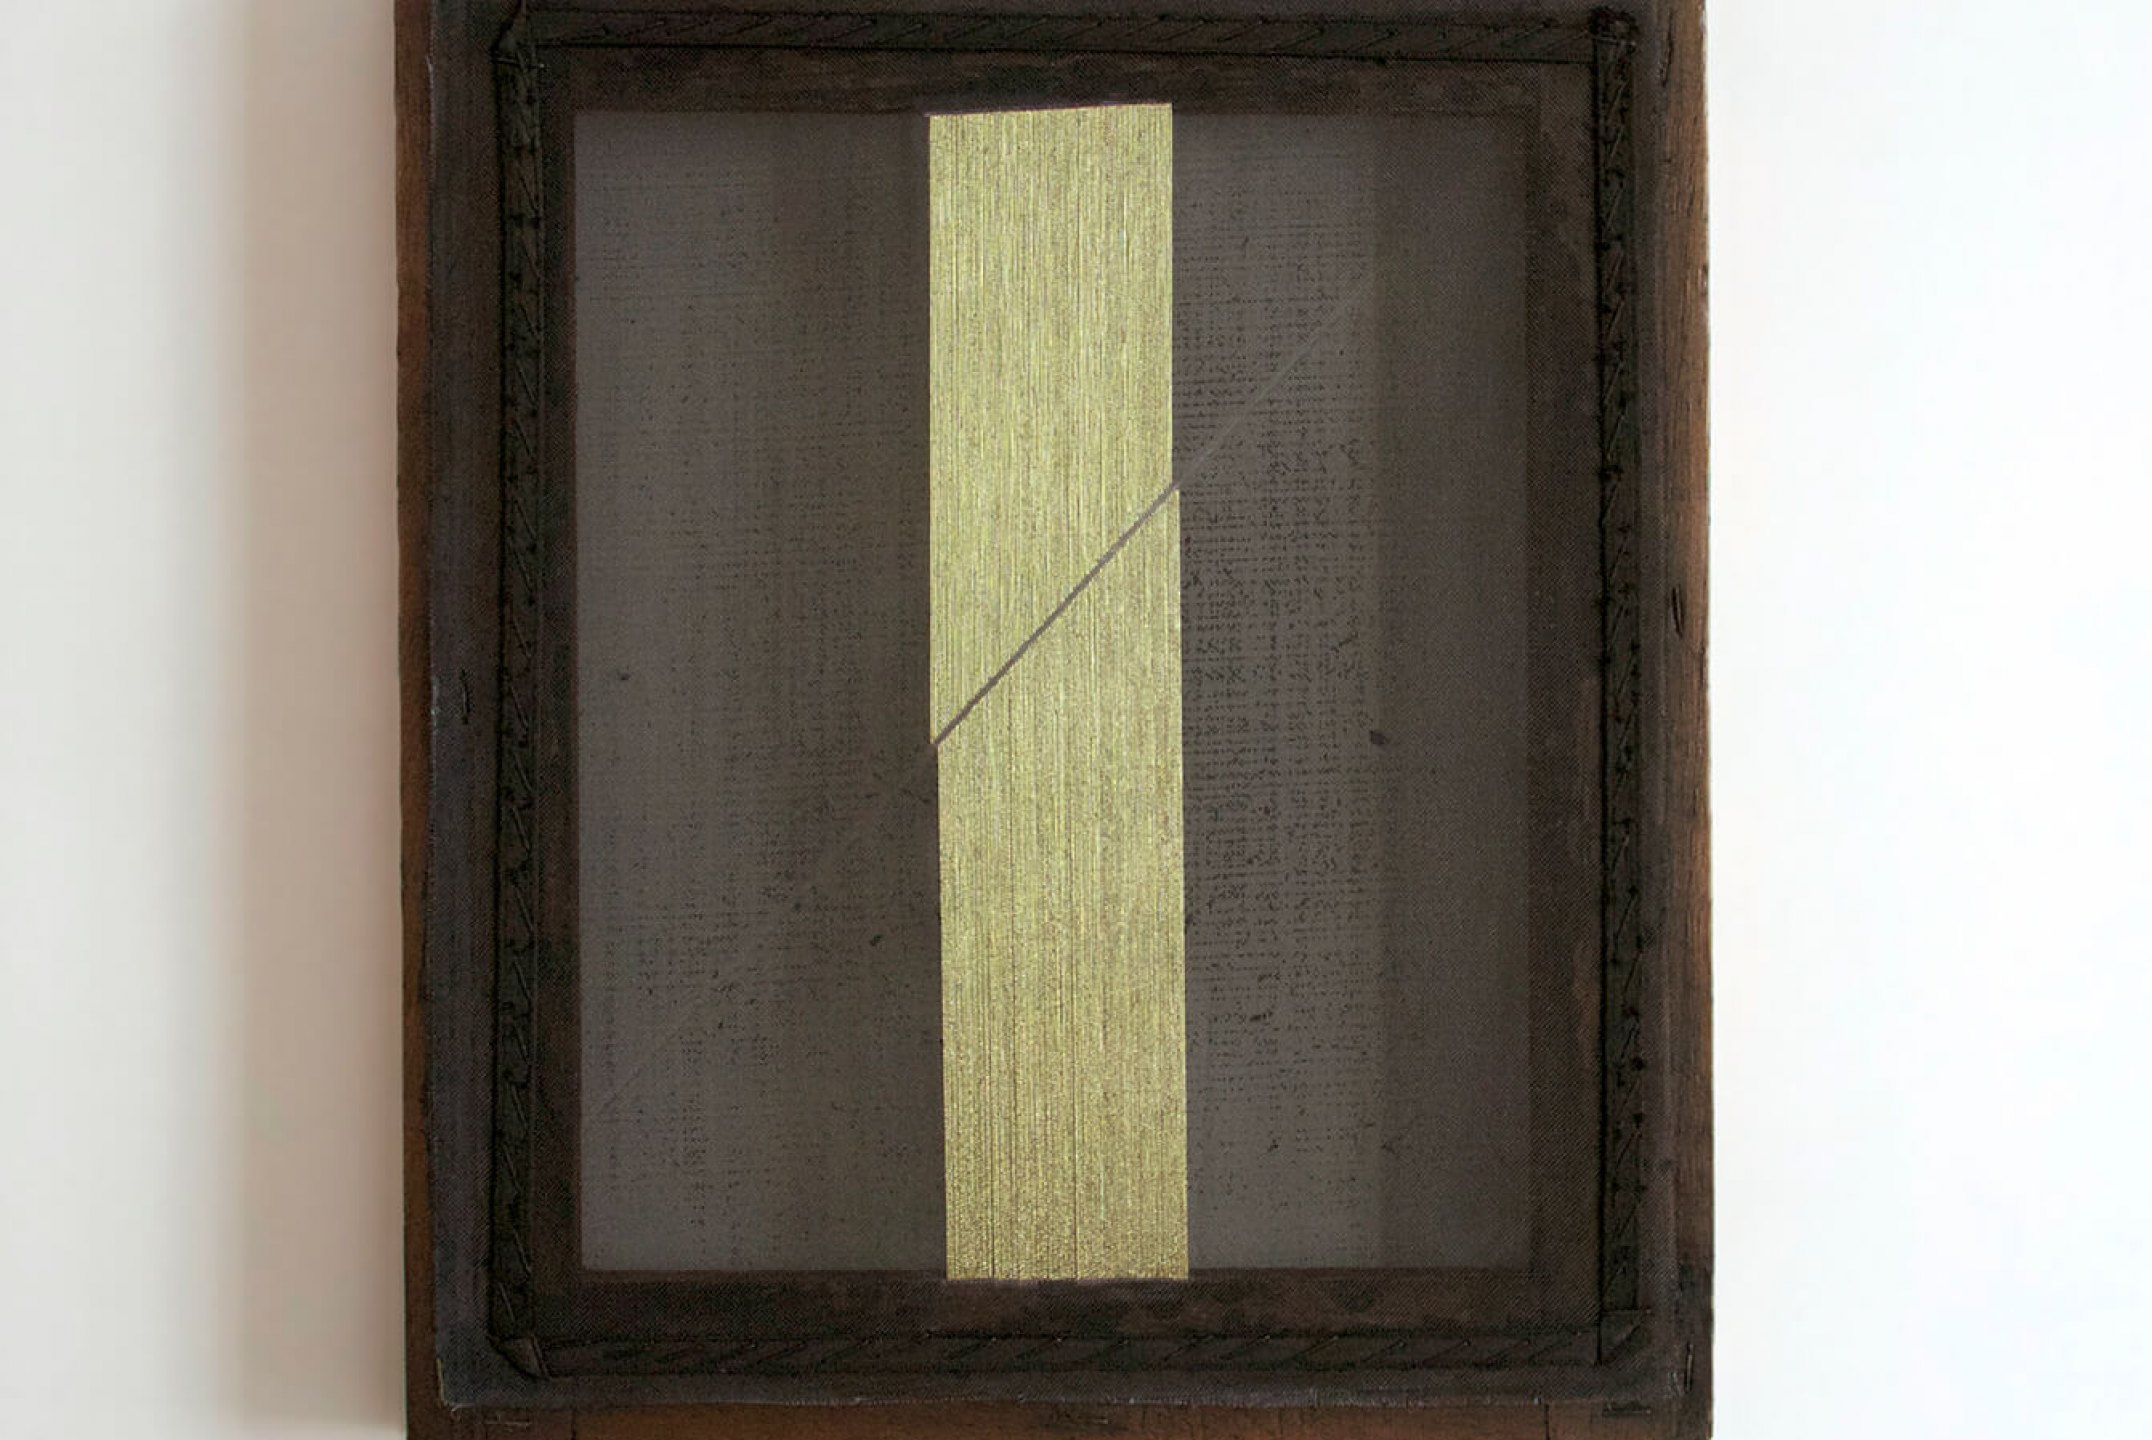 Paloma Bosquê, <em>Blade #1</em>, 2014, lurex threads on canvas, 39 × 30,5 cm - Mendes Wood DM